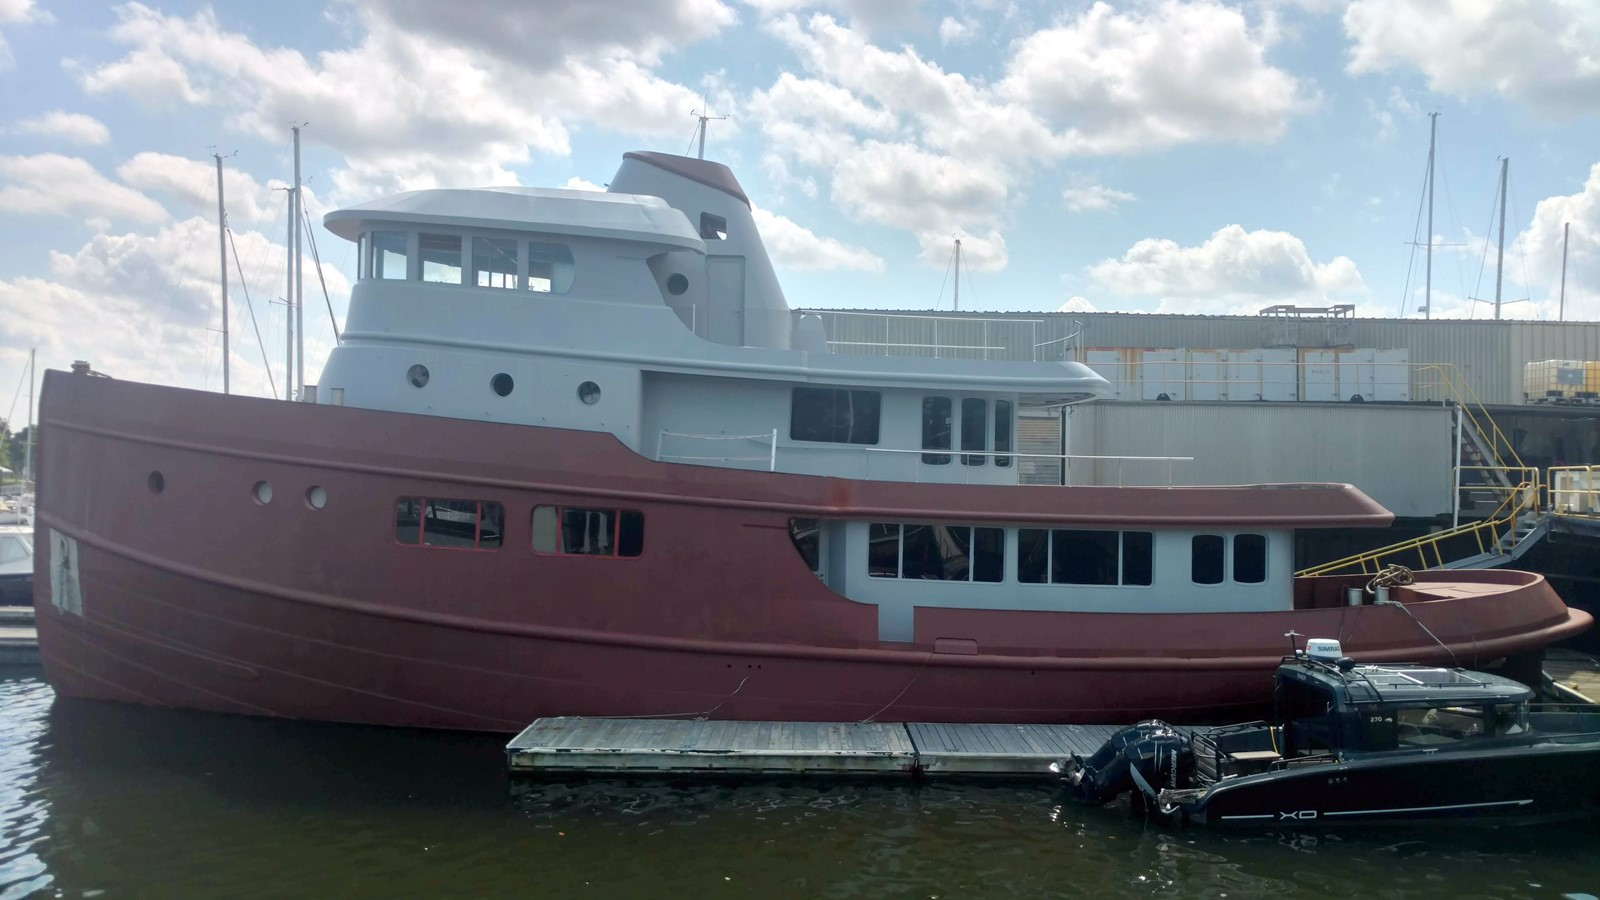 2018 GULFPORT SHIPBUILDING CORP Tug Boat Commercial Vessel 2310944